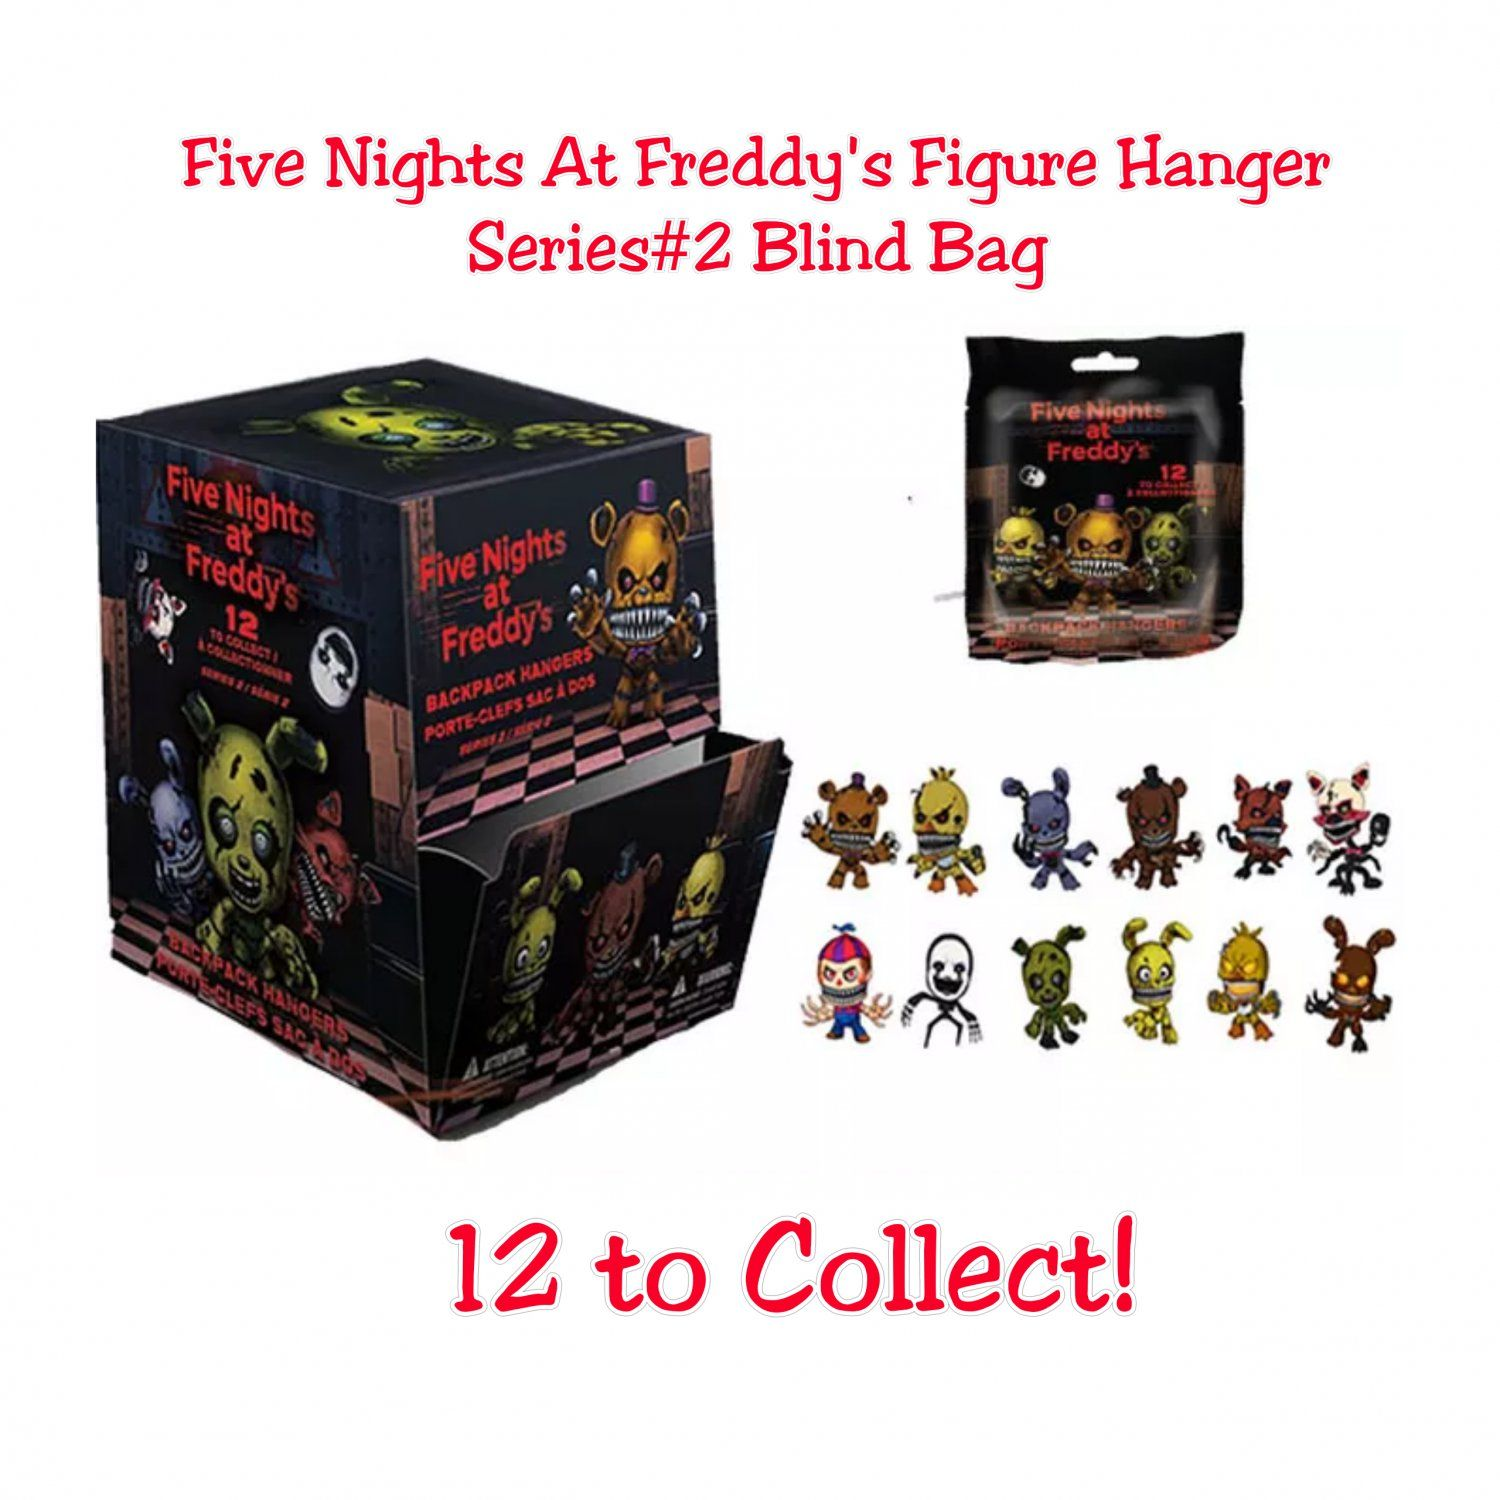 More five nights at freddy s construction sets coming soon - Five Nights At Freddy S Fnaf Series 2 Collector Backpack Figure Hangers Blind Bags 9